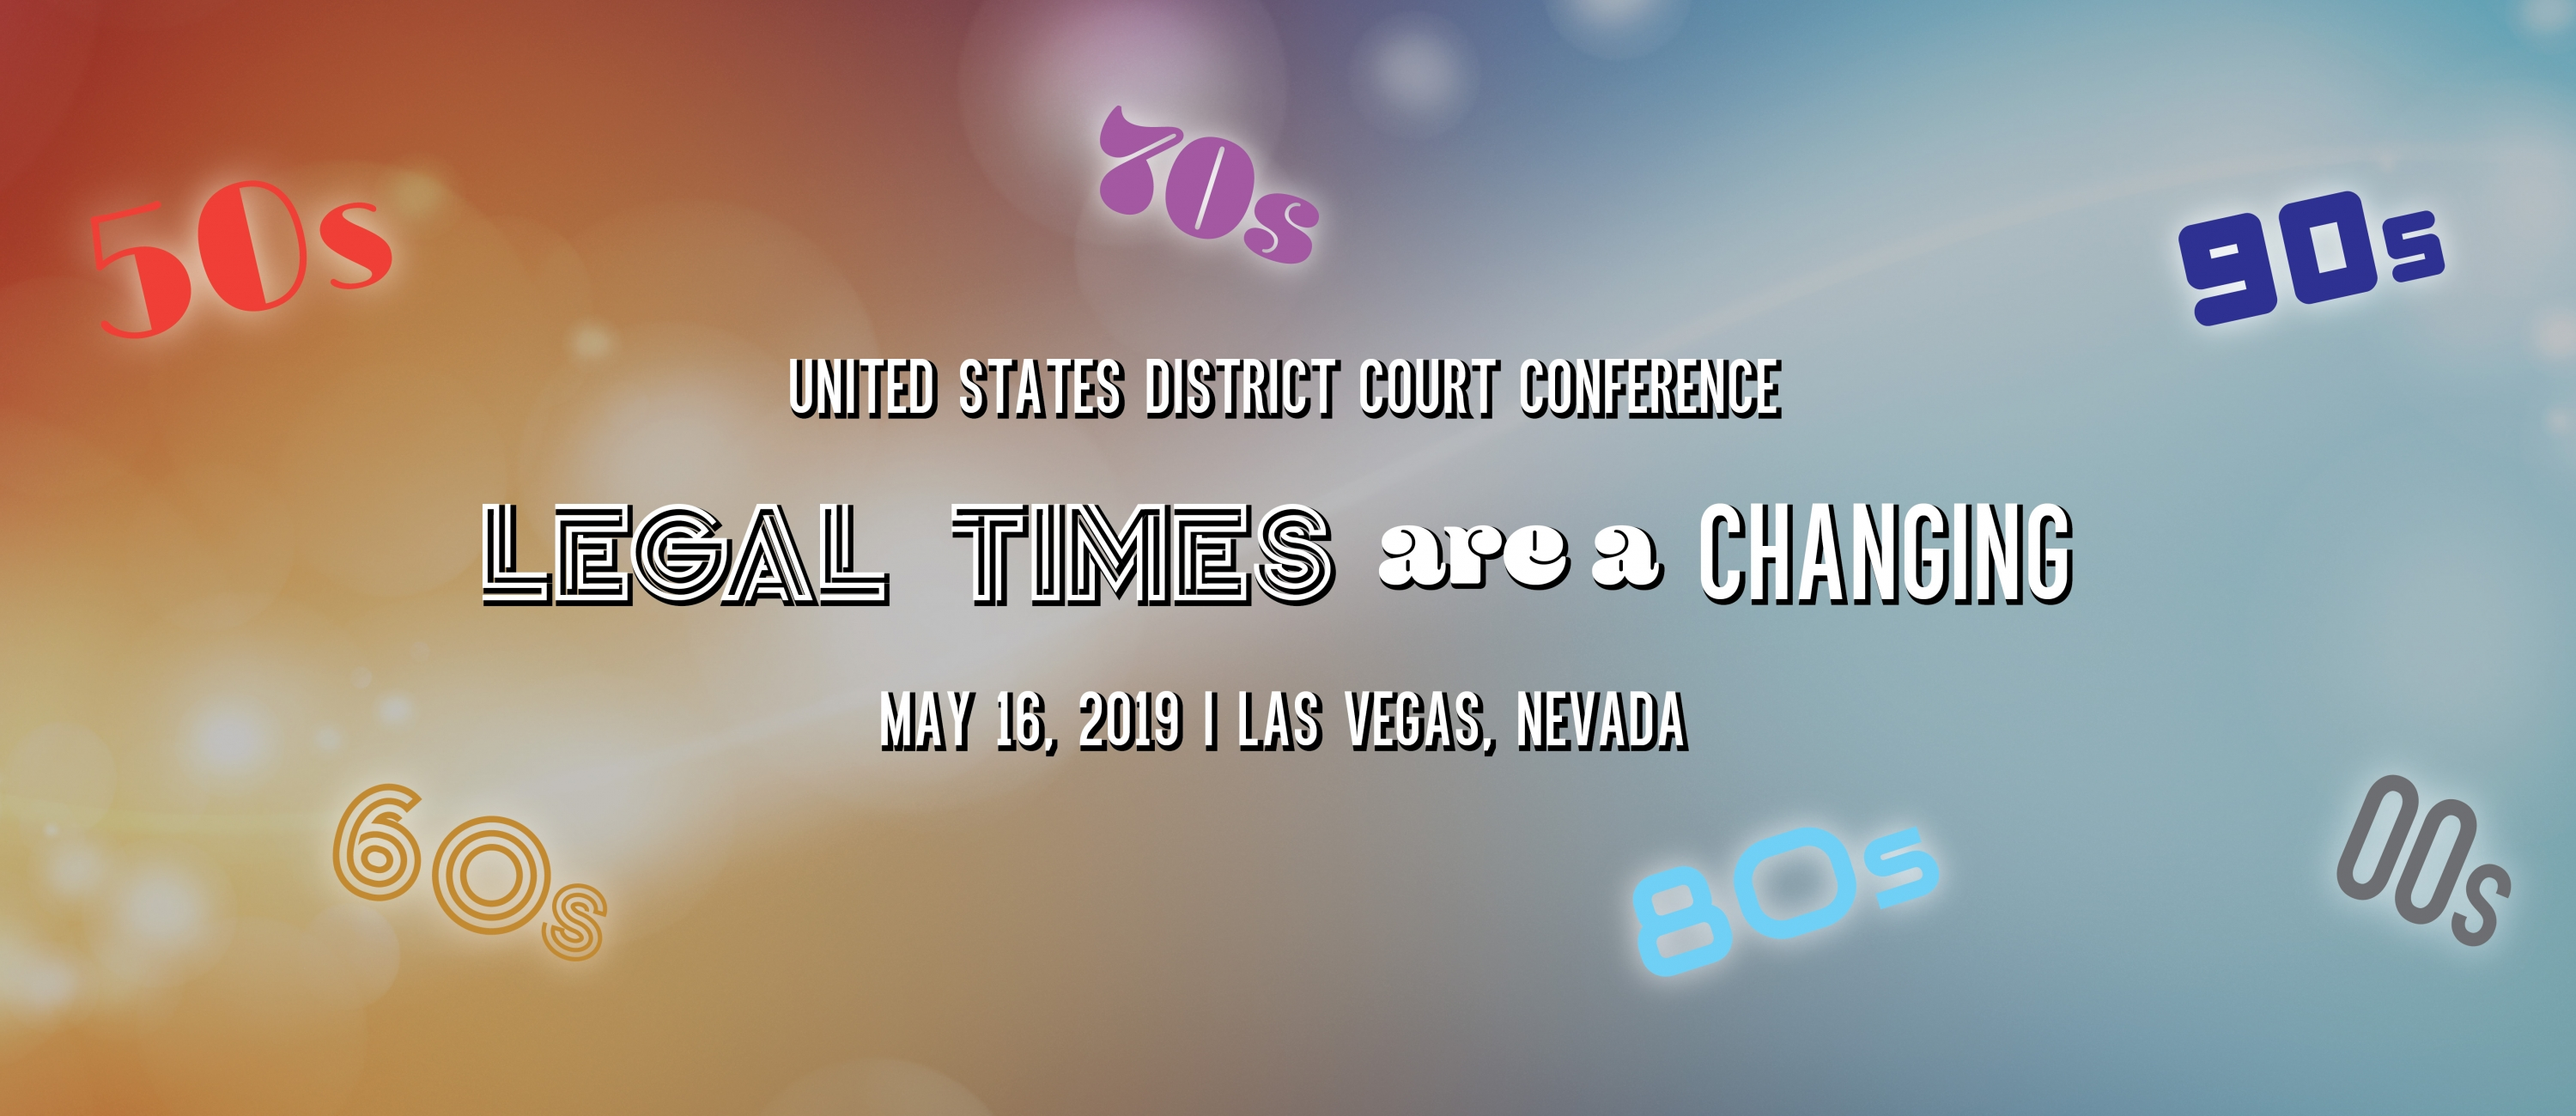 2019 US District Court Conference